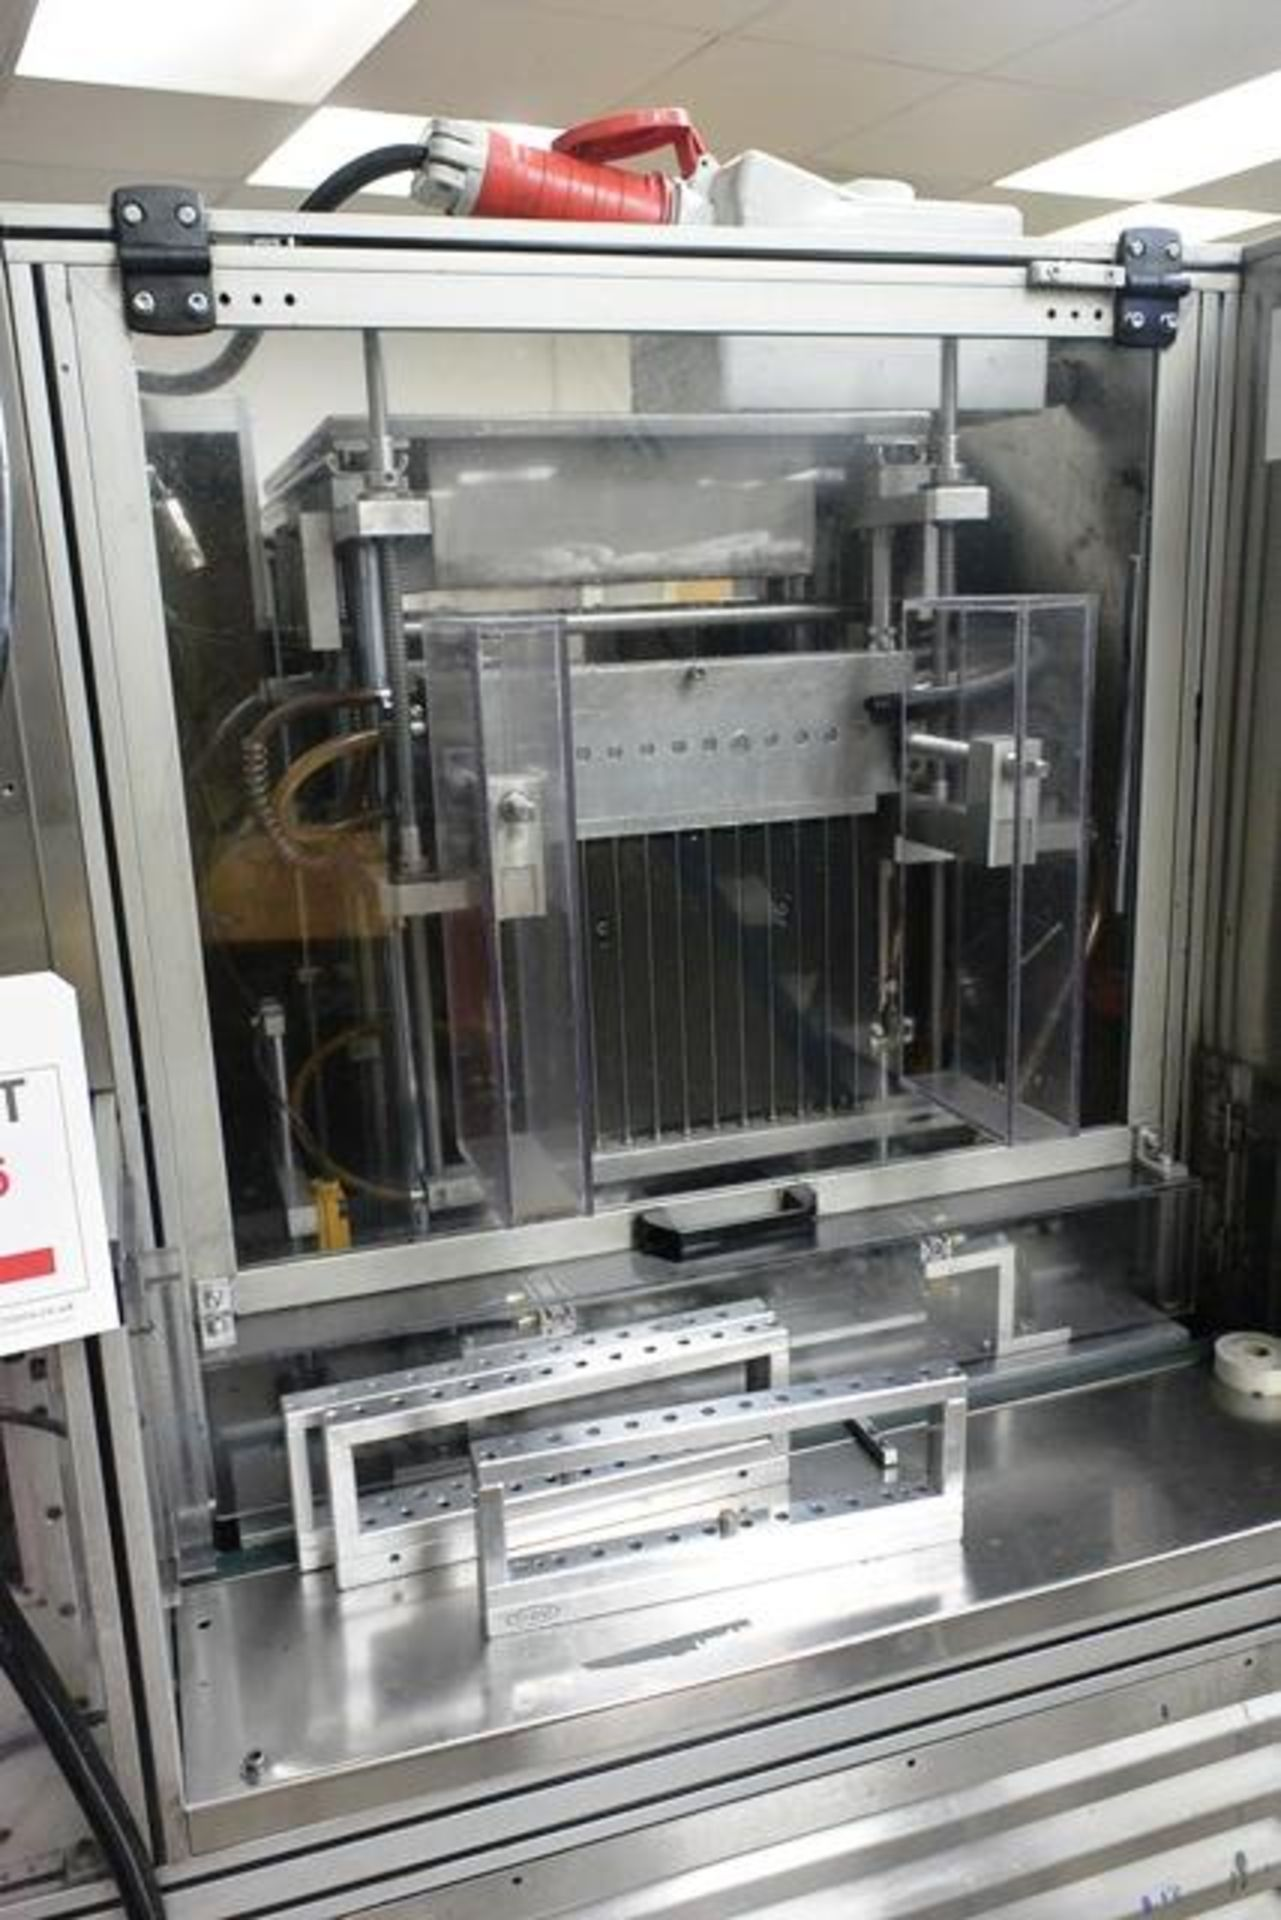 Yo-Hau stainless steel filling machine, type L85ND3, with mould preheat and 4-door/twin side chiller - Image 3 of 9